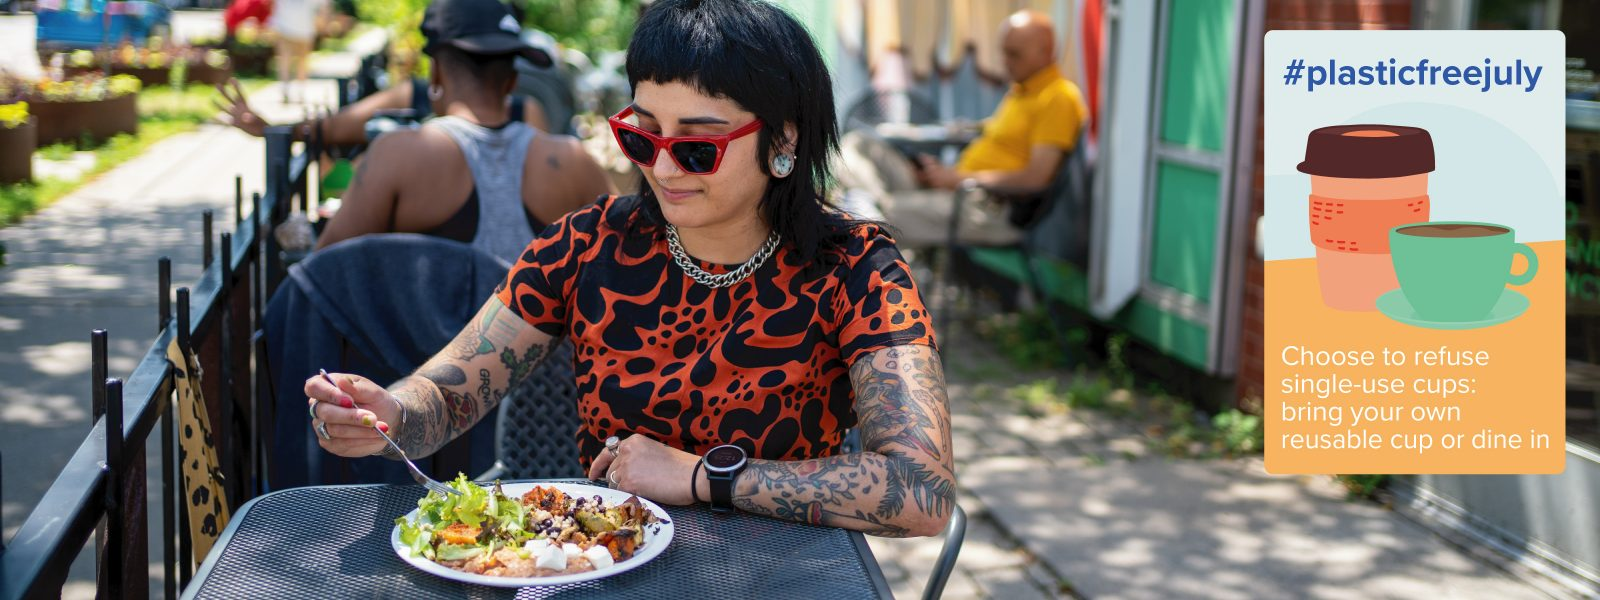 """person in orange shirt sitting on a patio eating food with an overlaid graphic that says """"#plasticfreejuly choose to refuse single-use cups: bring your own or dine in"""""""